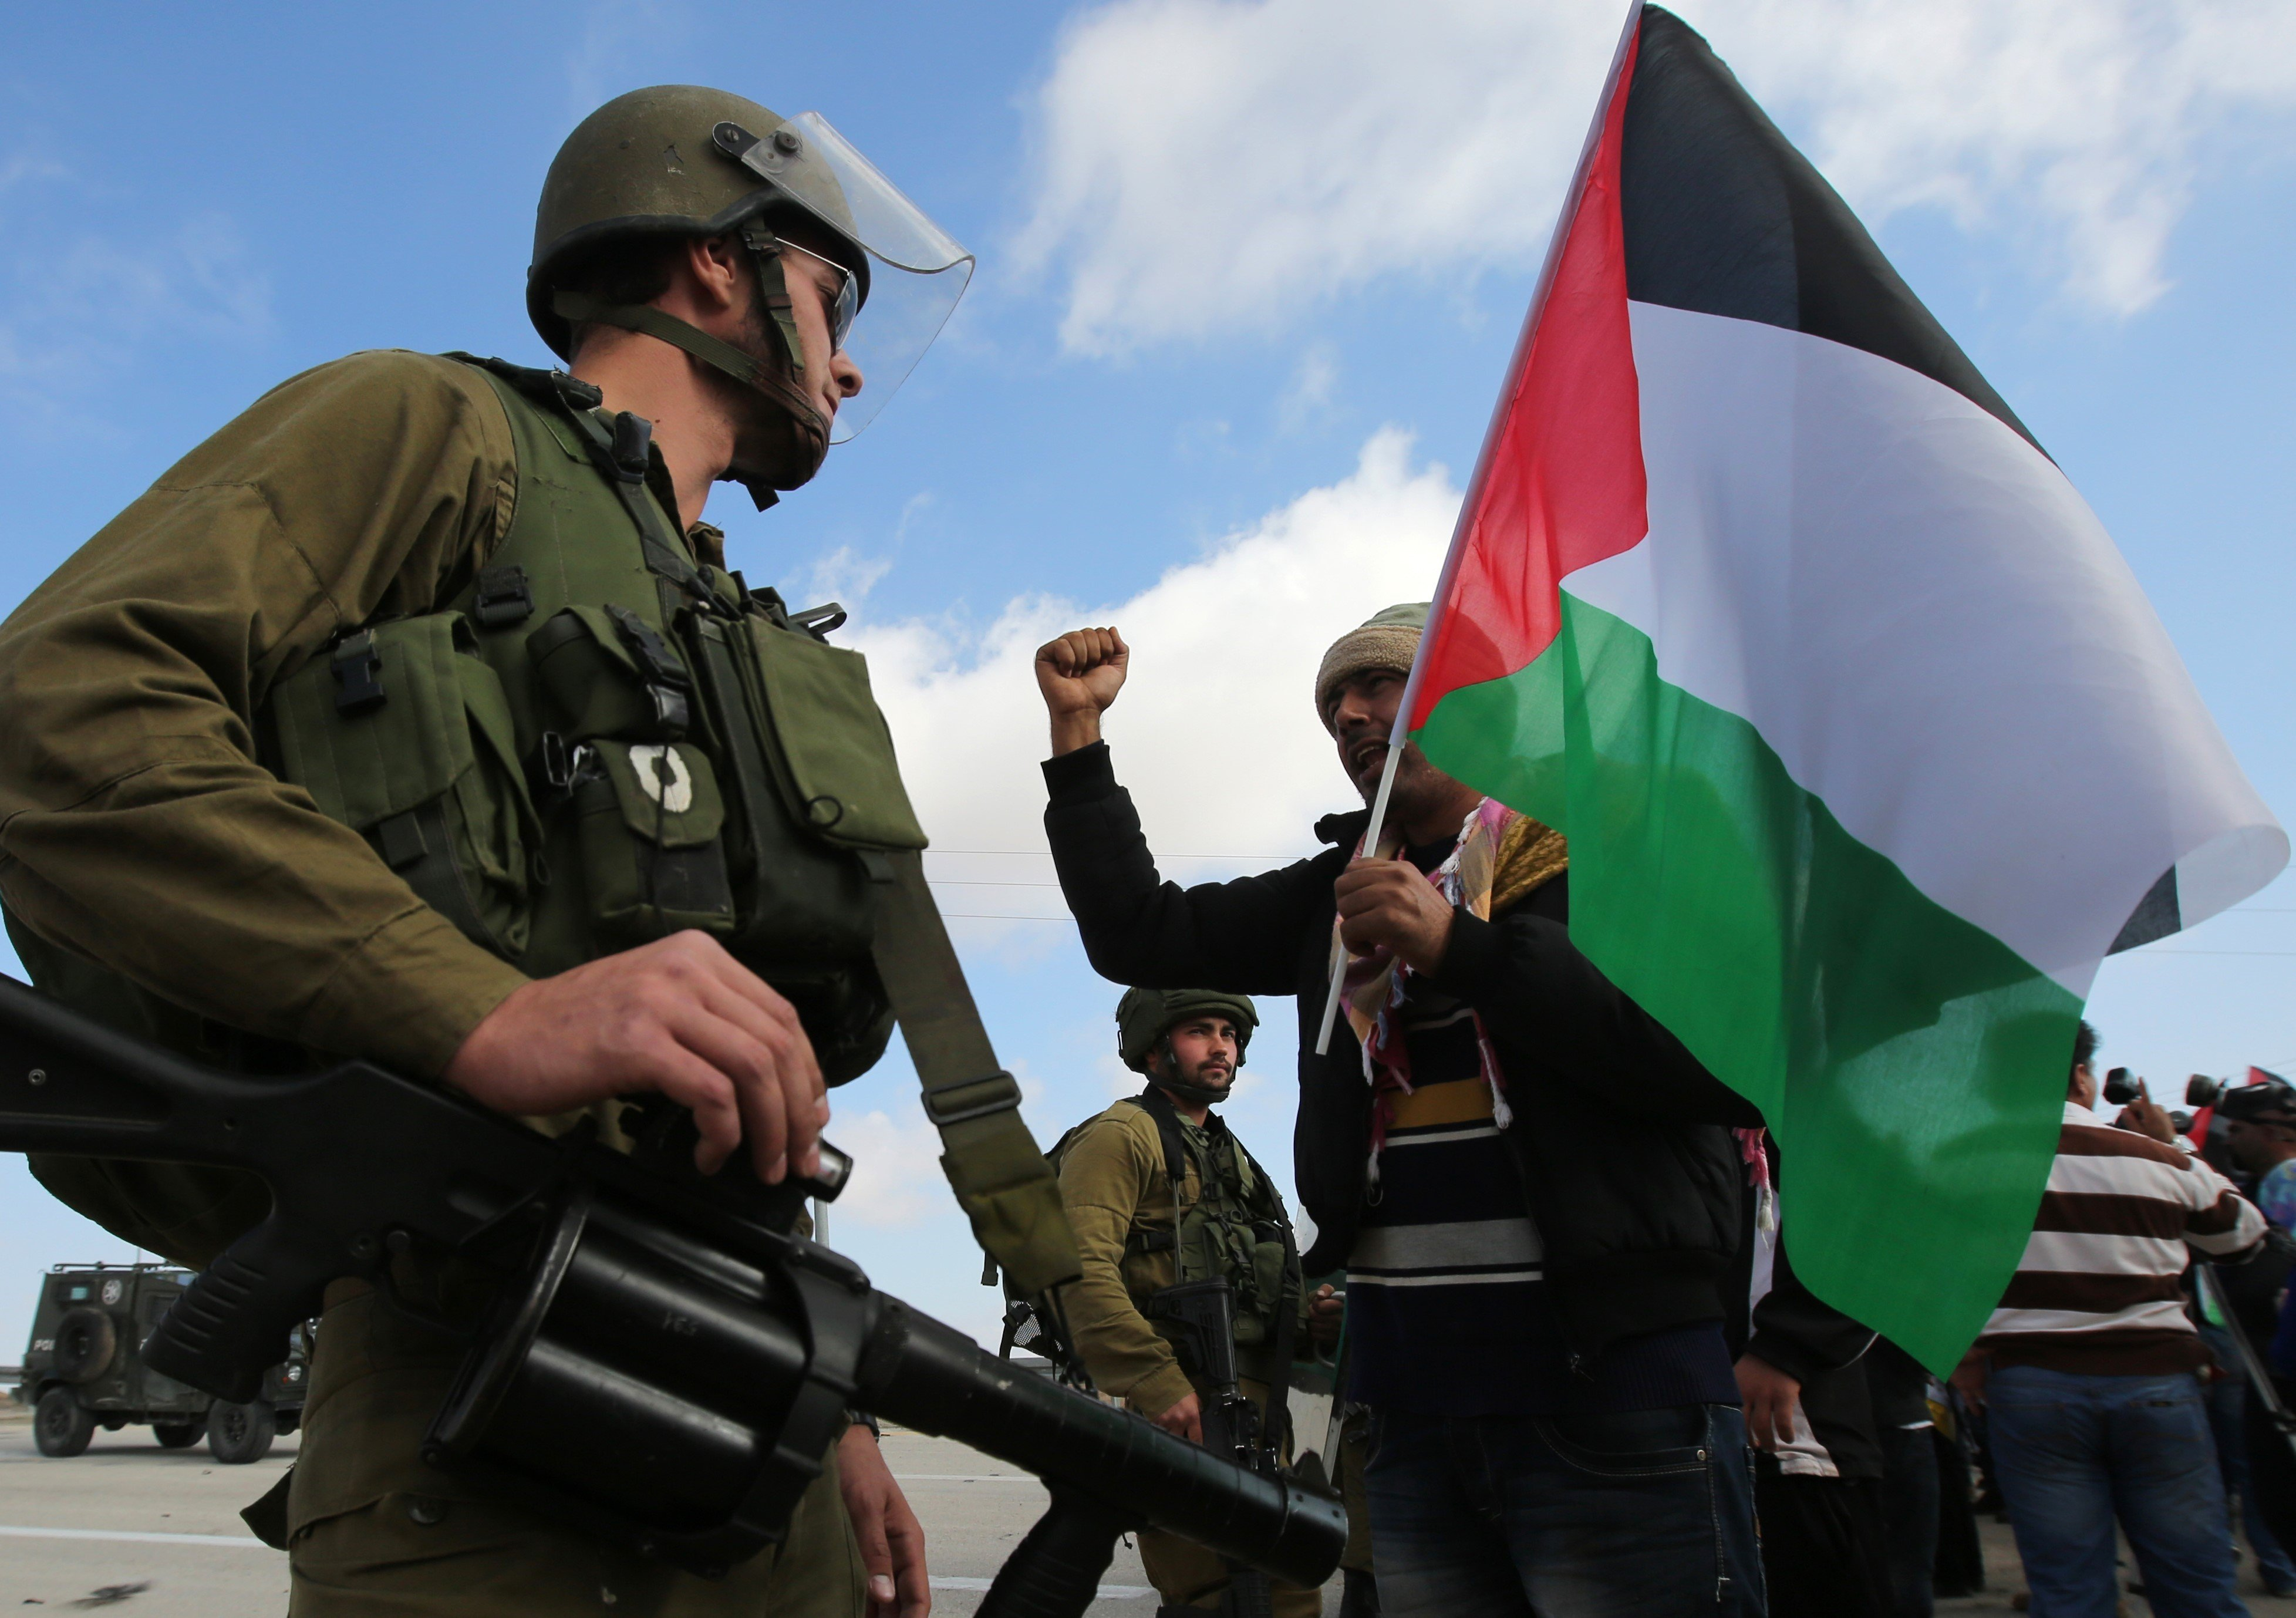 Israel's ethnic cleansing in Palestine is not history - it's still happening